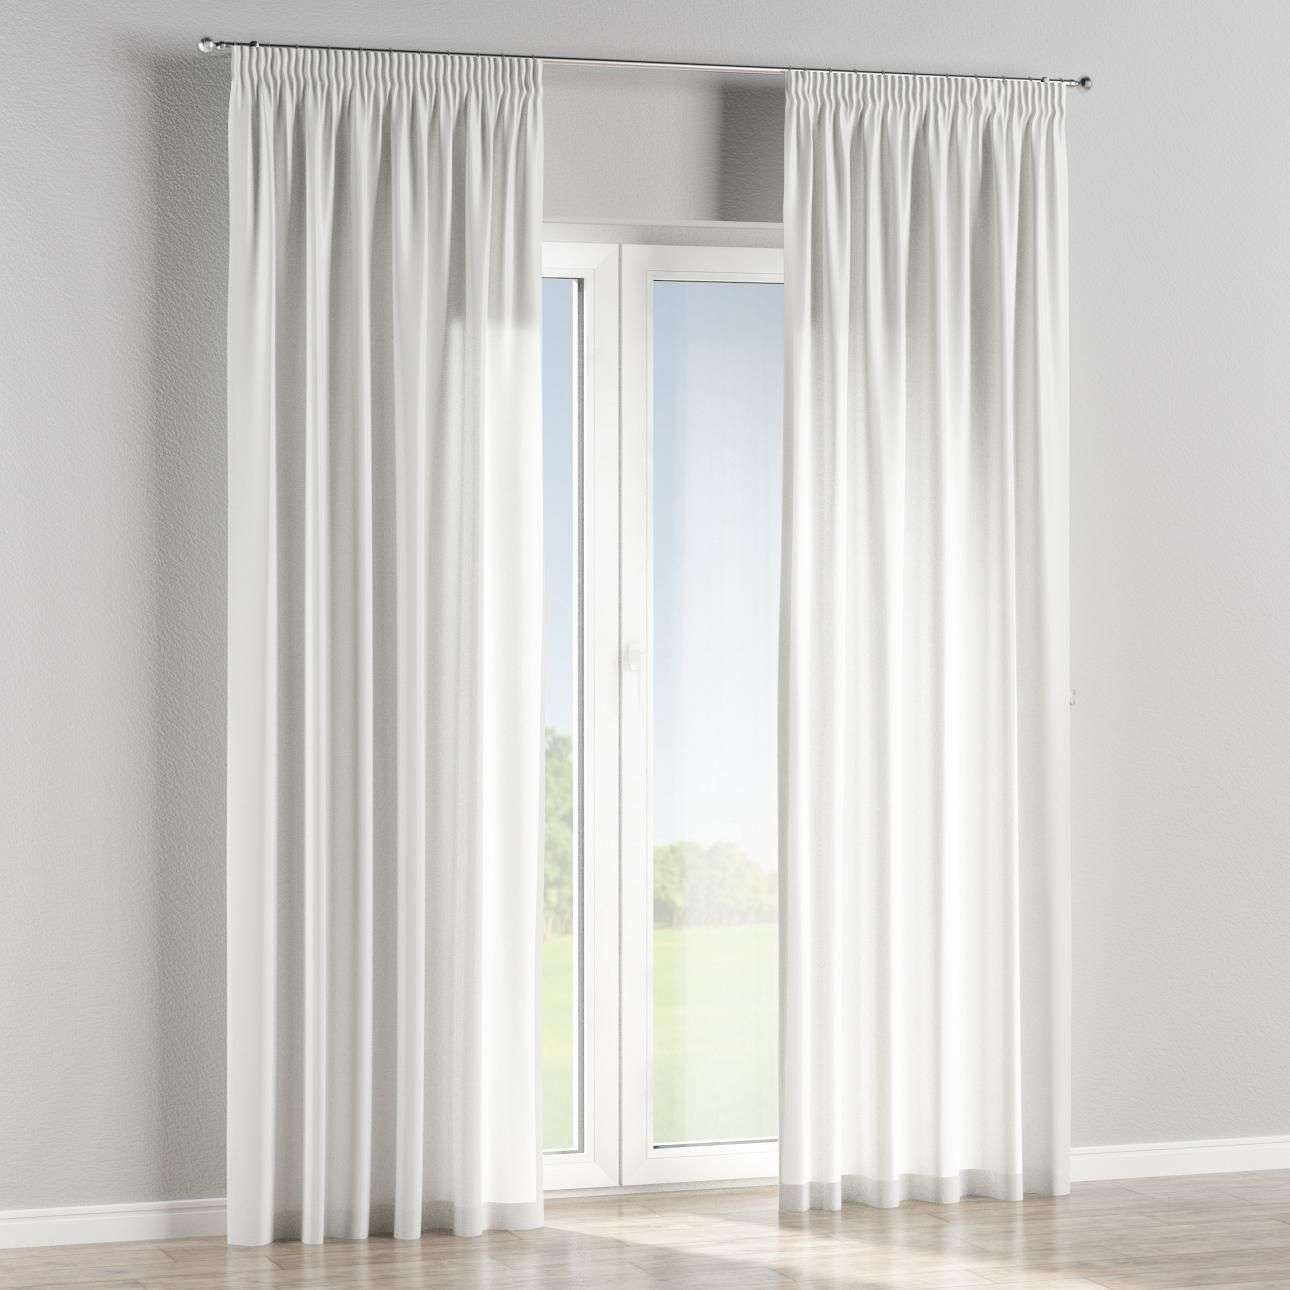 Pencil pleat lined curtains in collection Flowers, fabric: 311-08